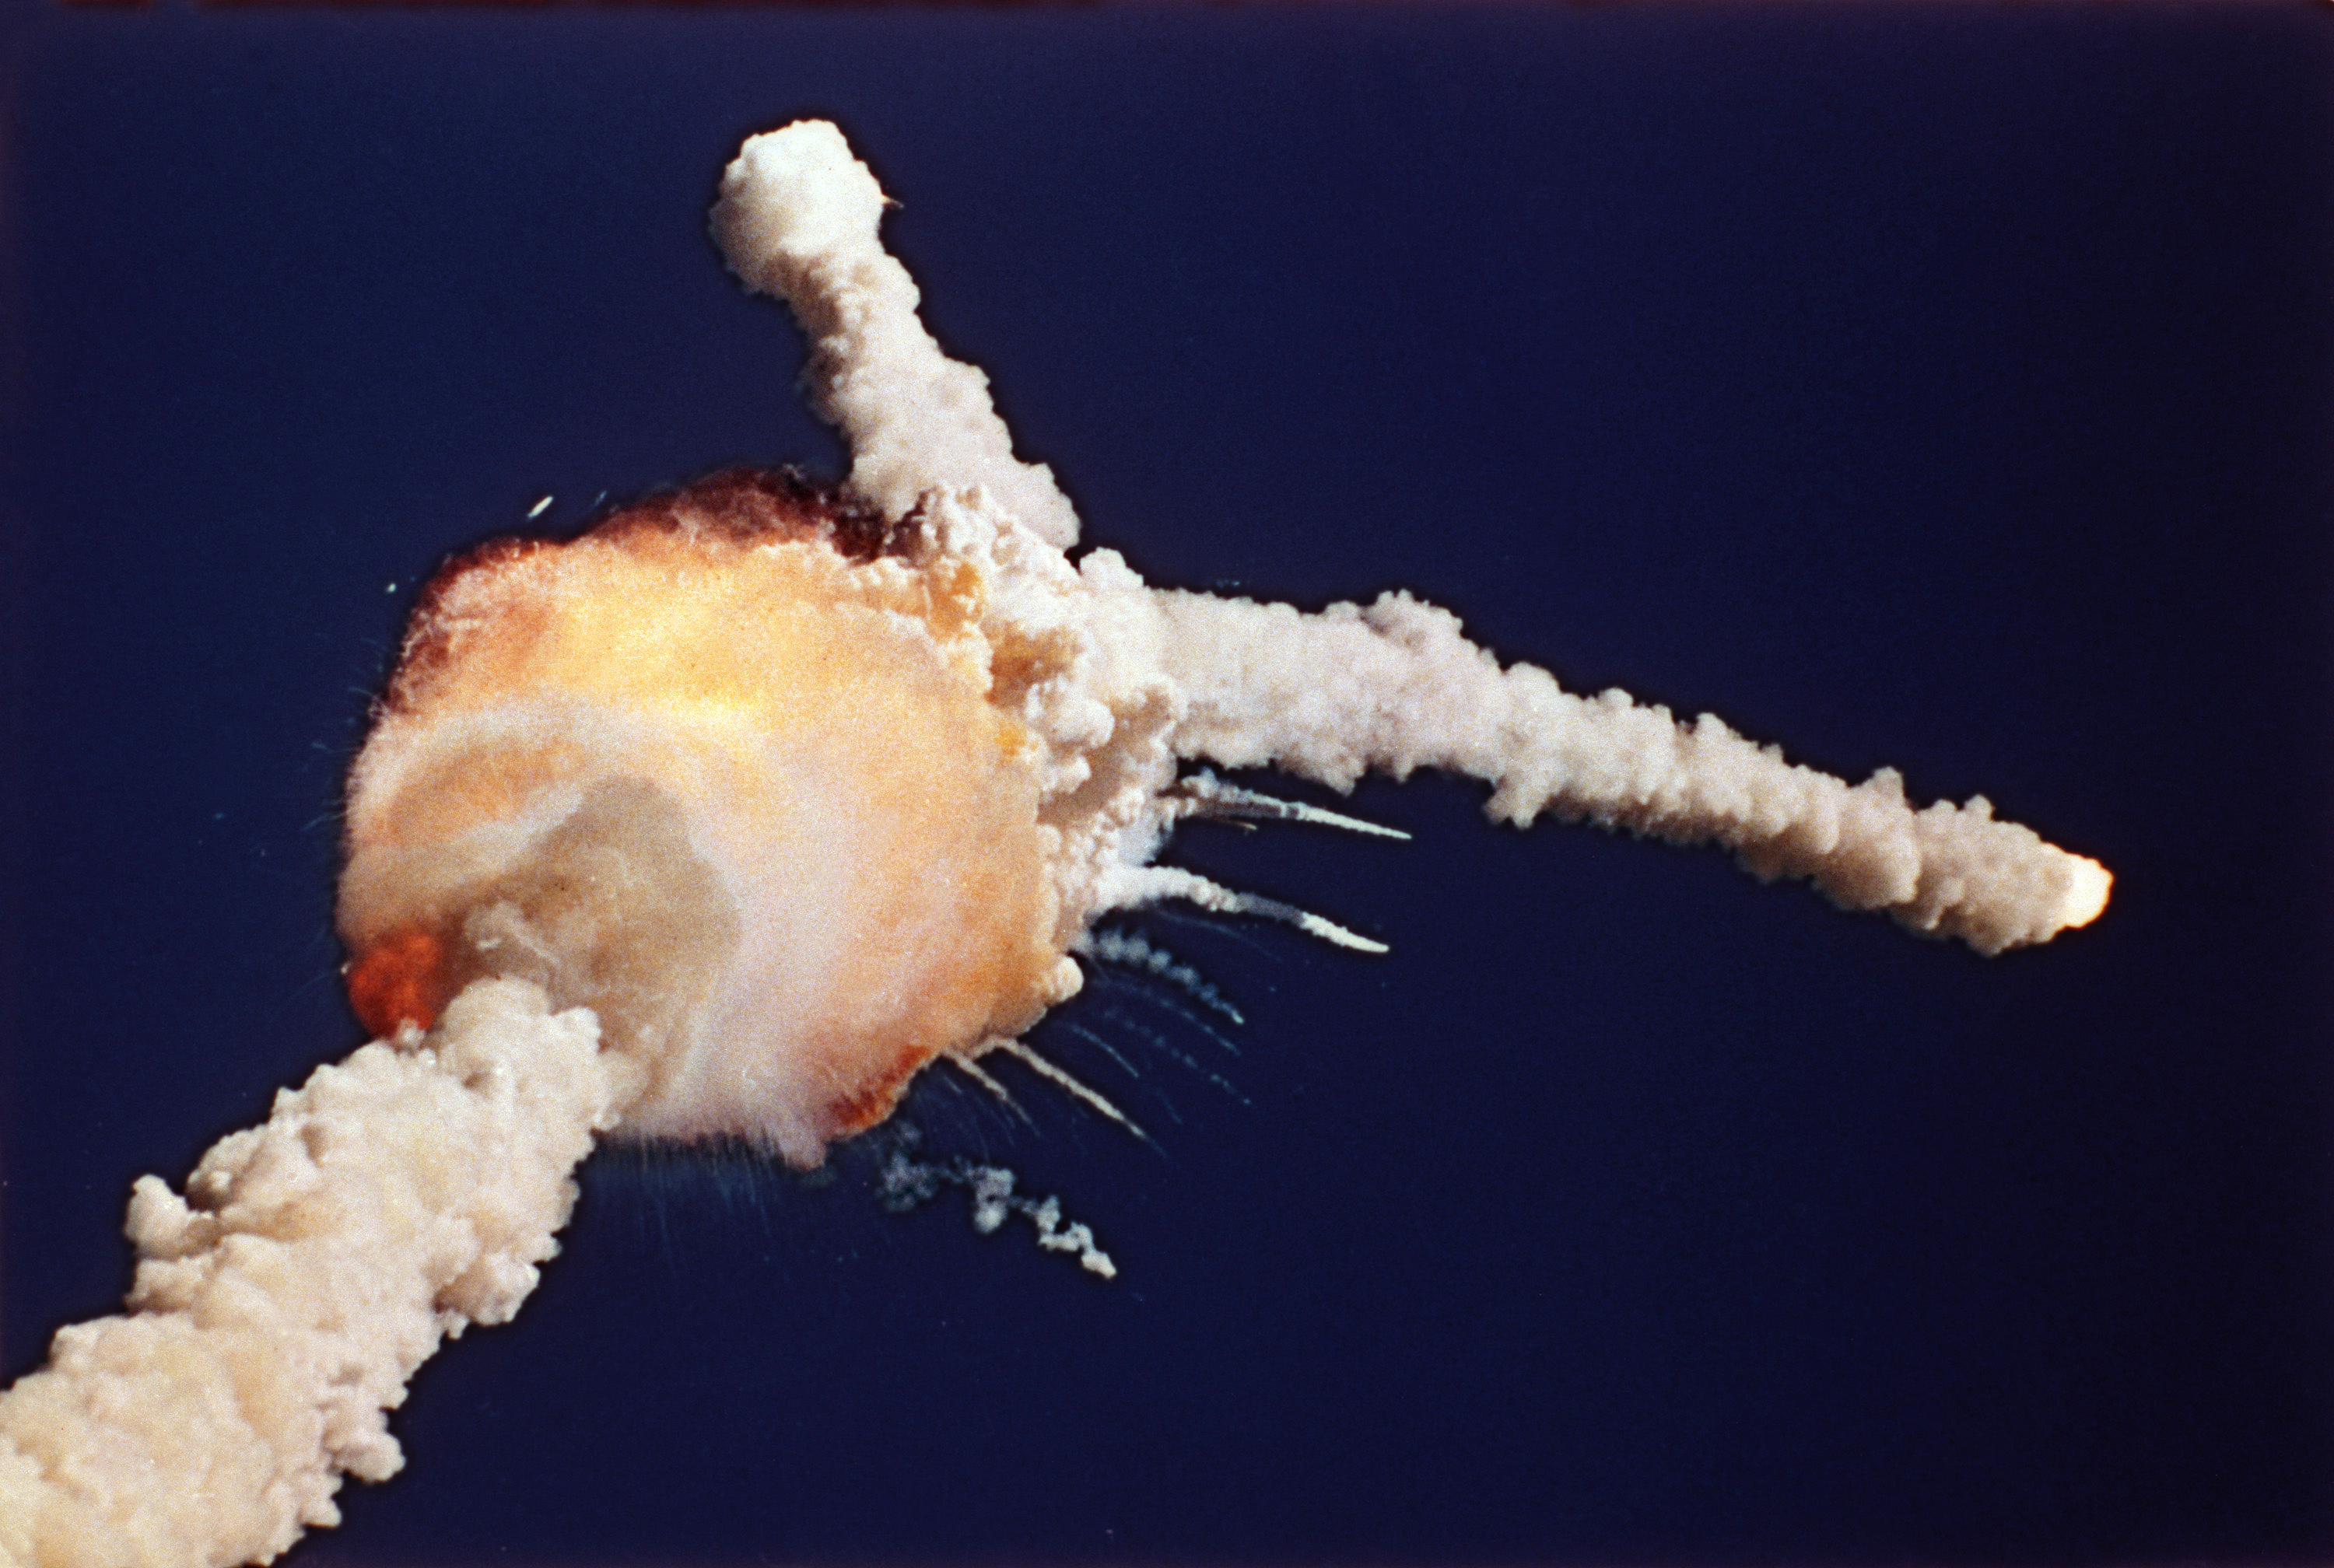 Space-Shuttle-Challenger-30th-Anniversary-Photo-Gallery.jpeg